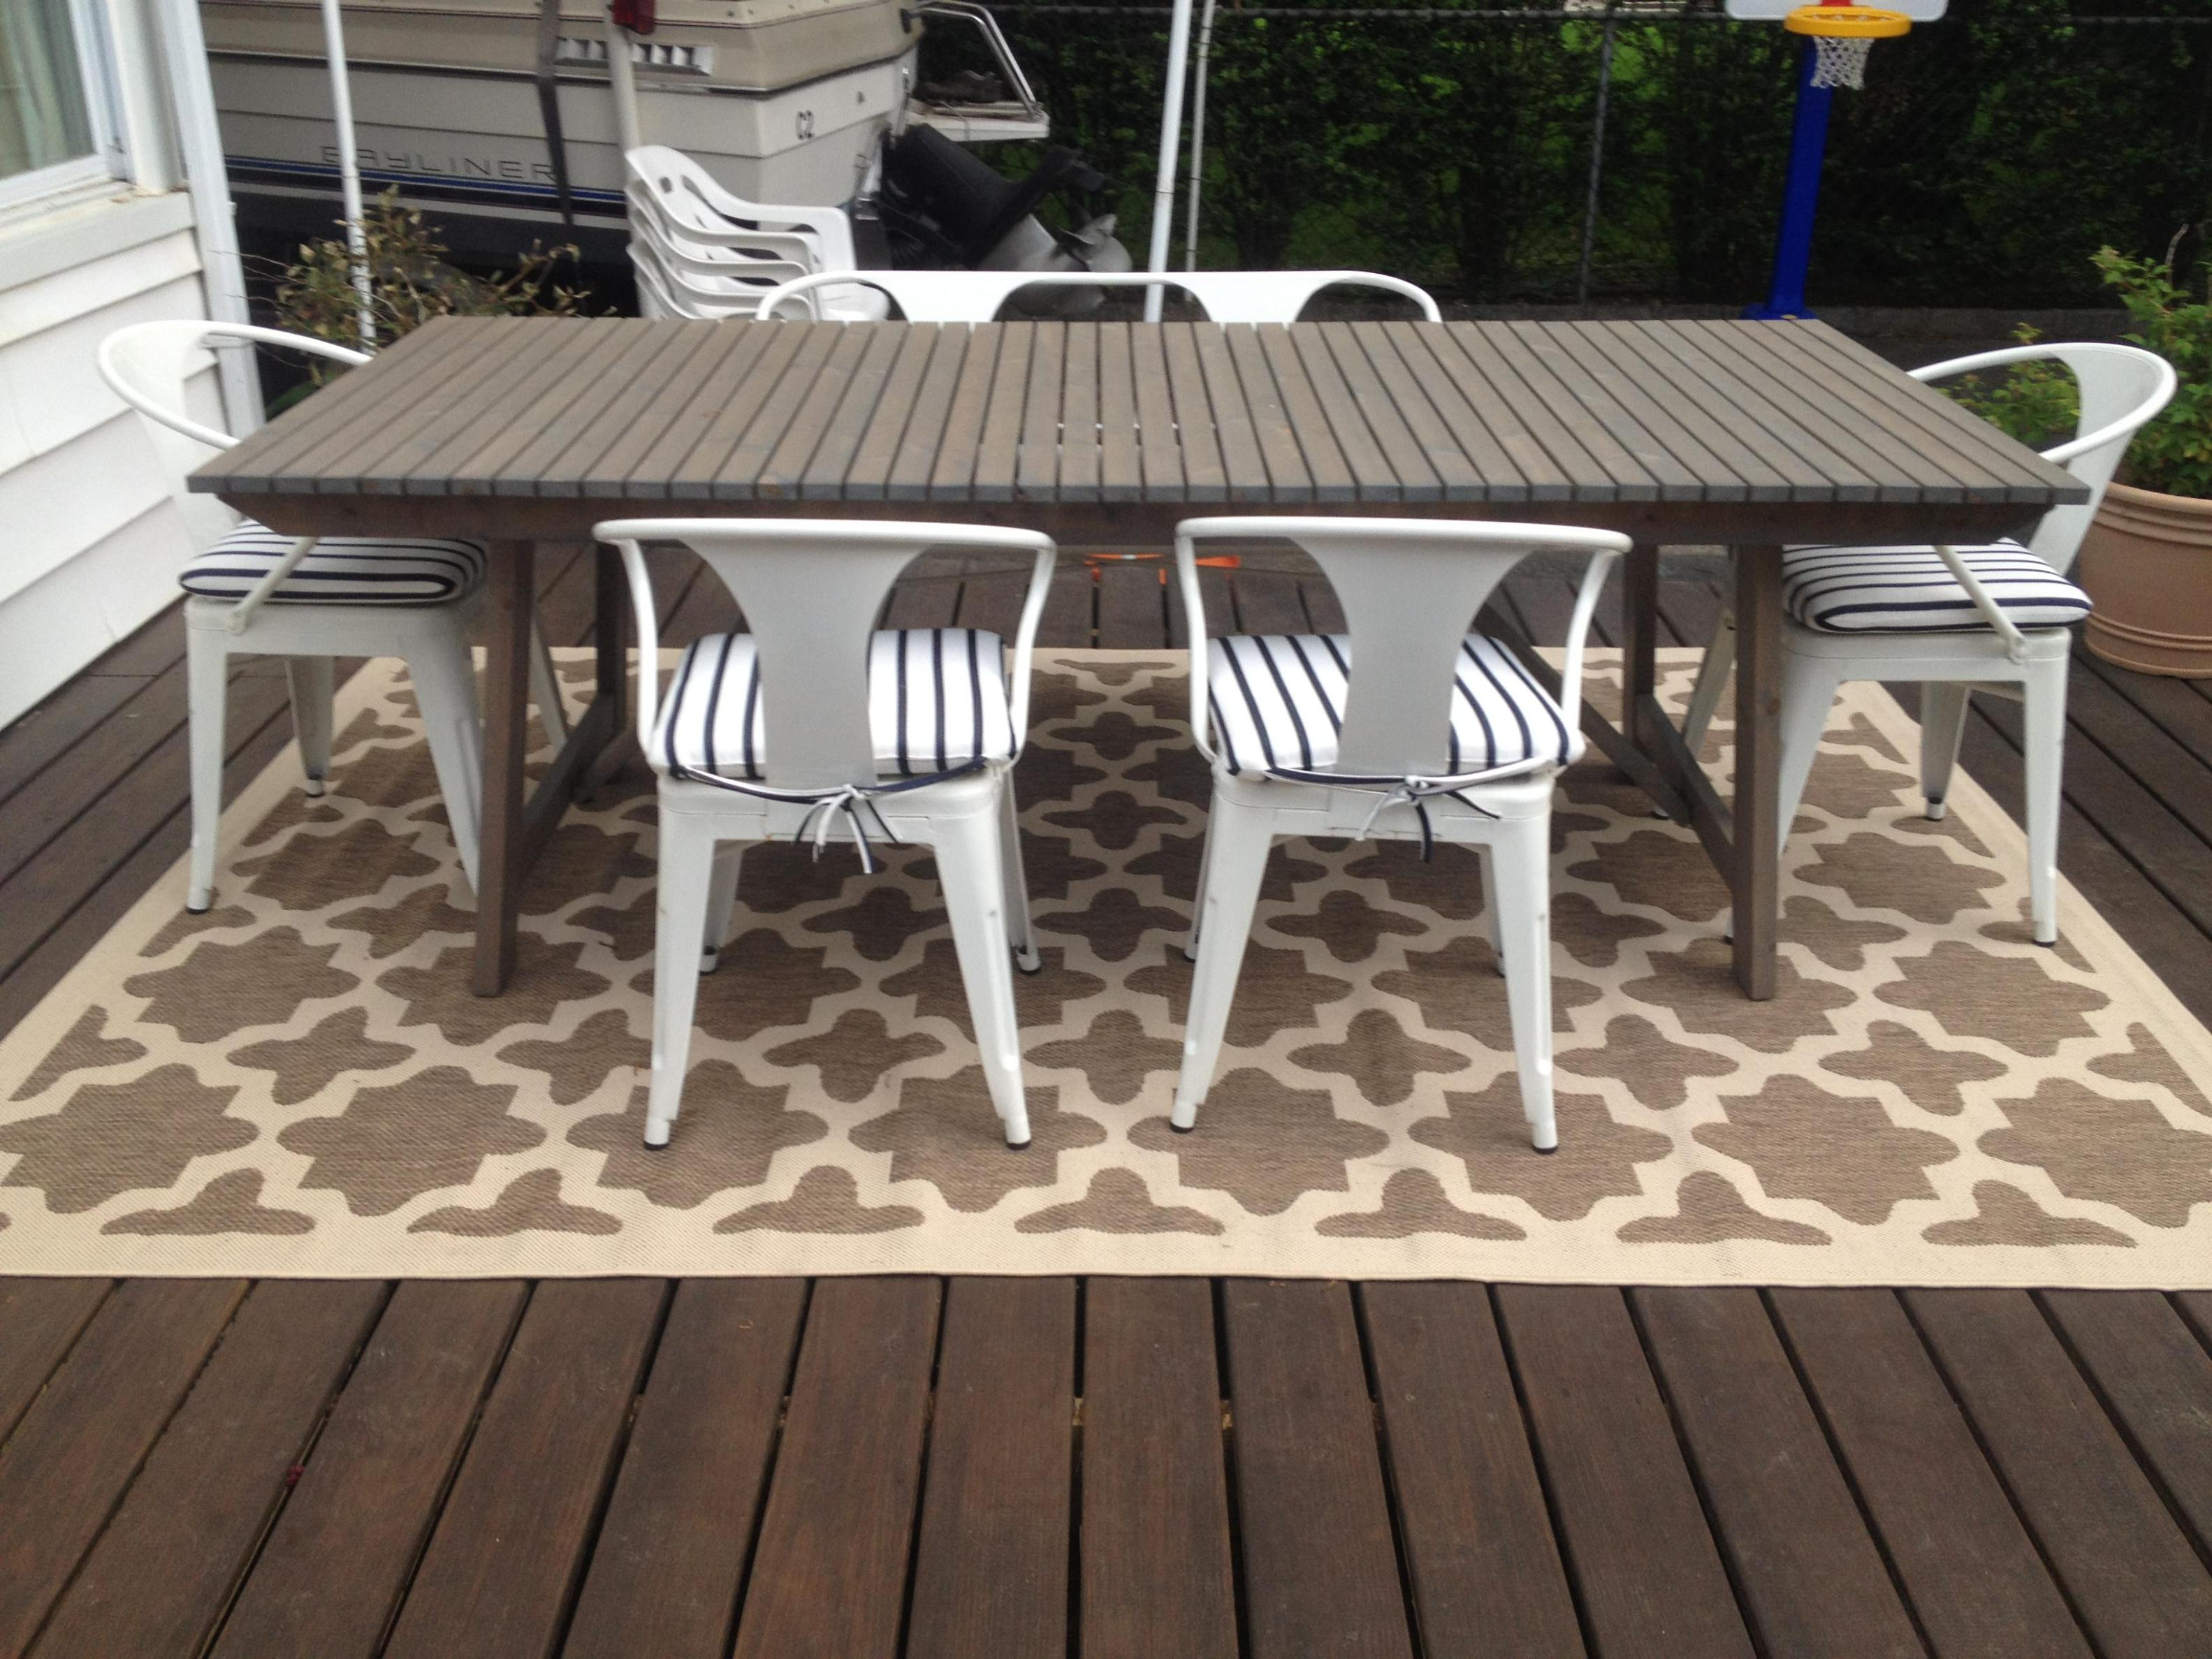 Popular Image of: Outdoor Rugs For Patios Cheap large outdoor rugs for patios